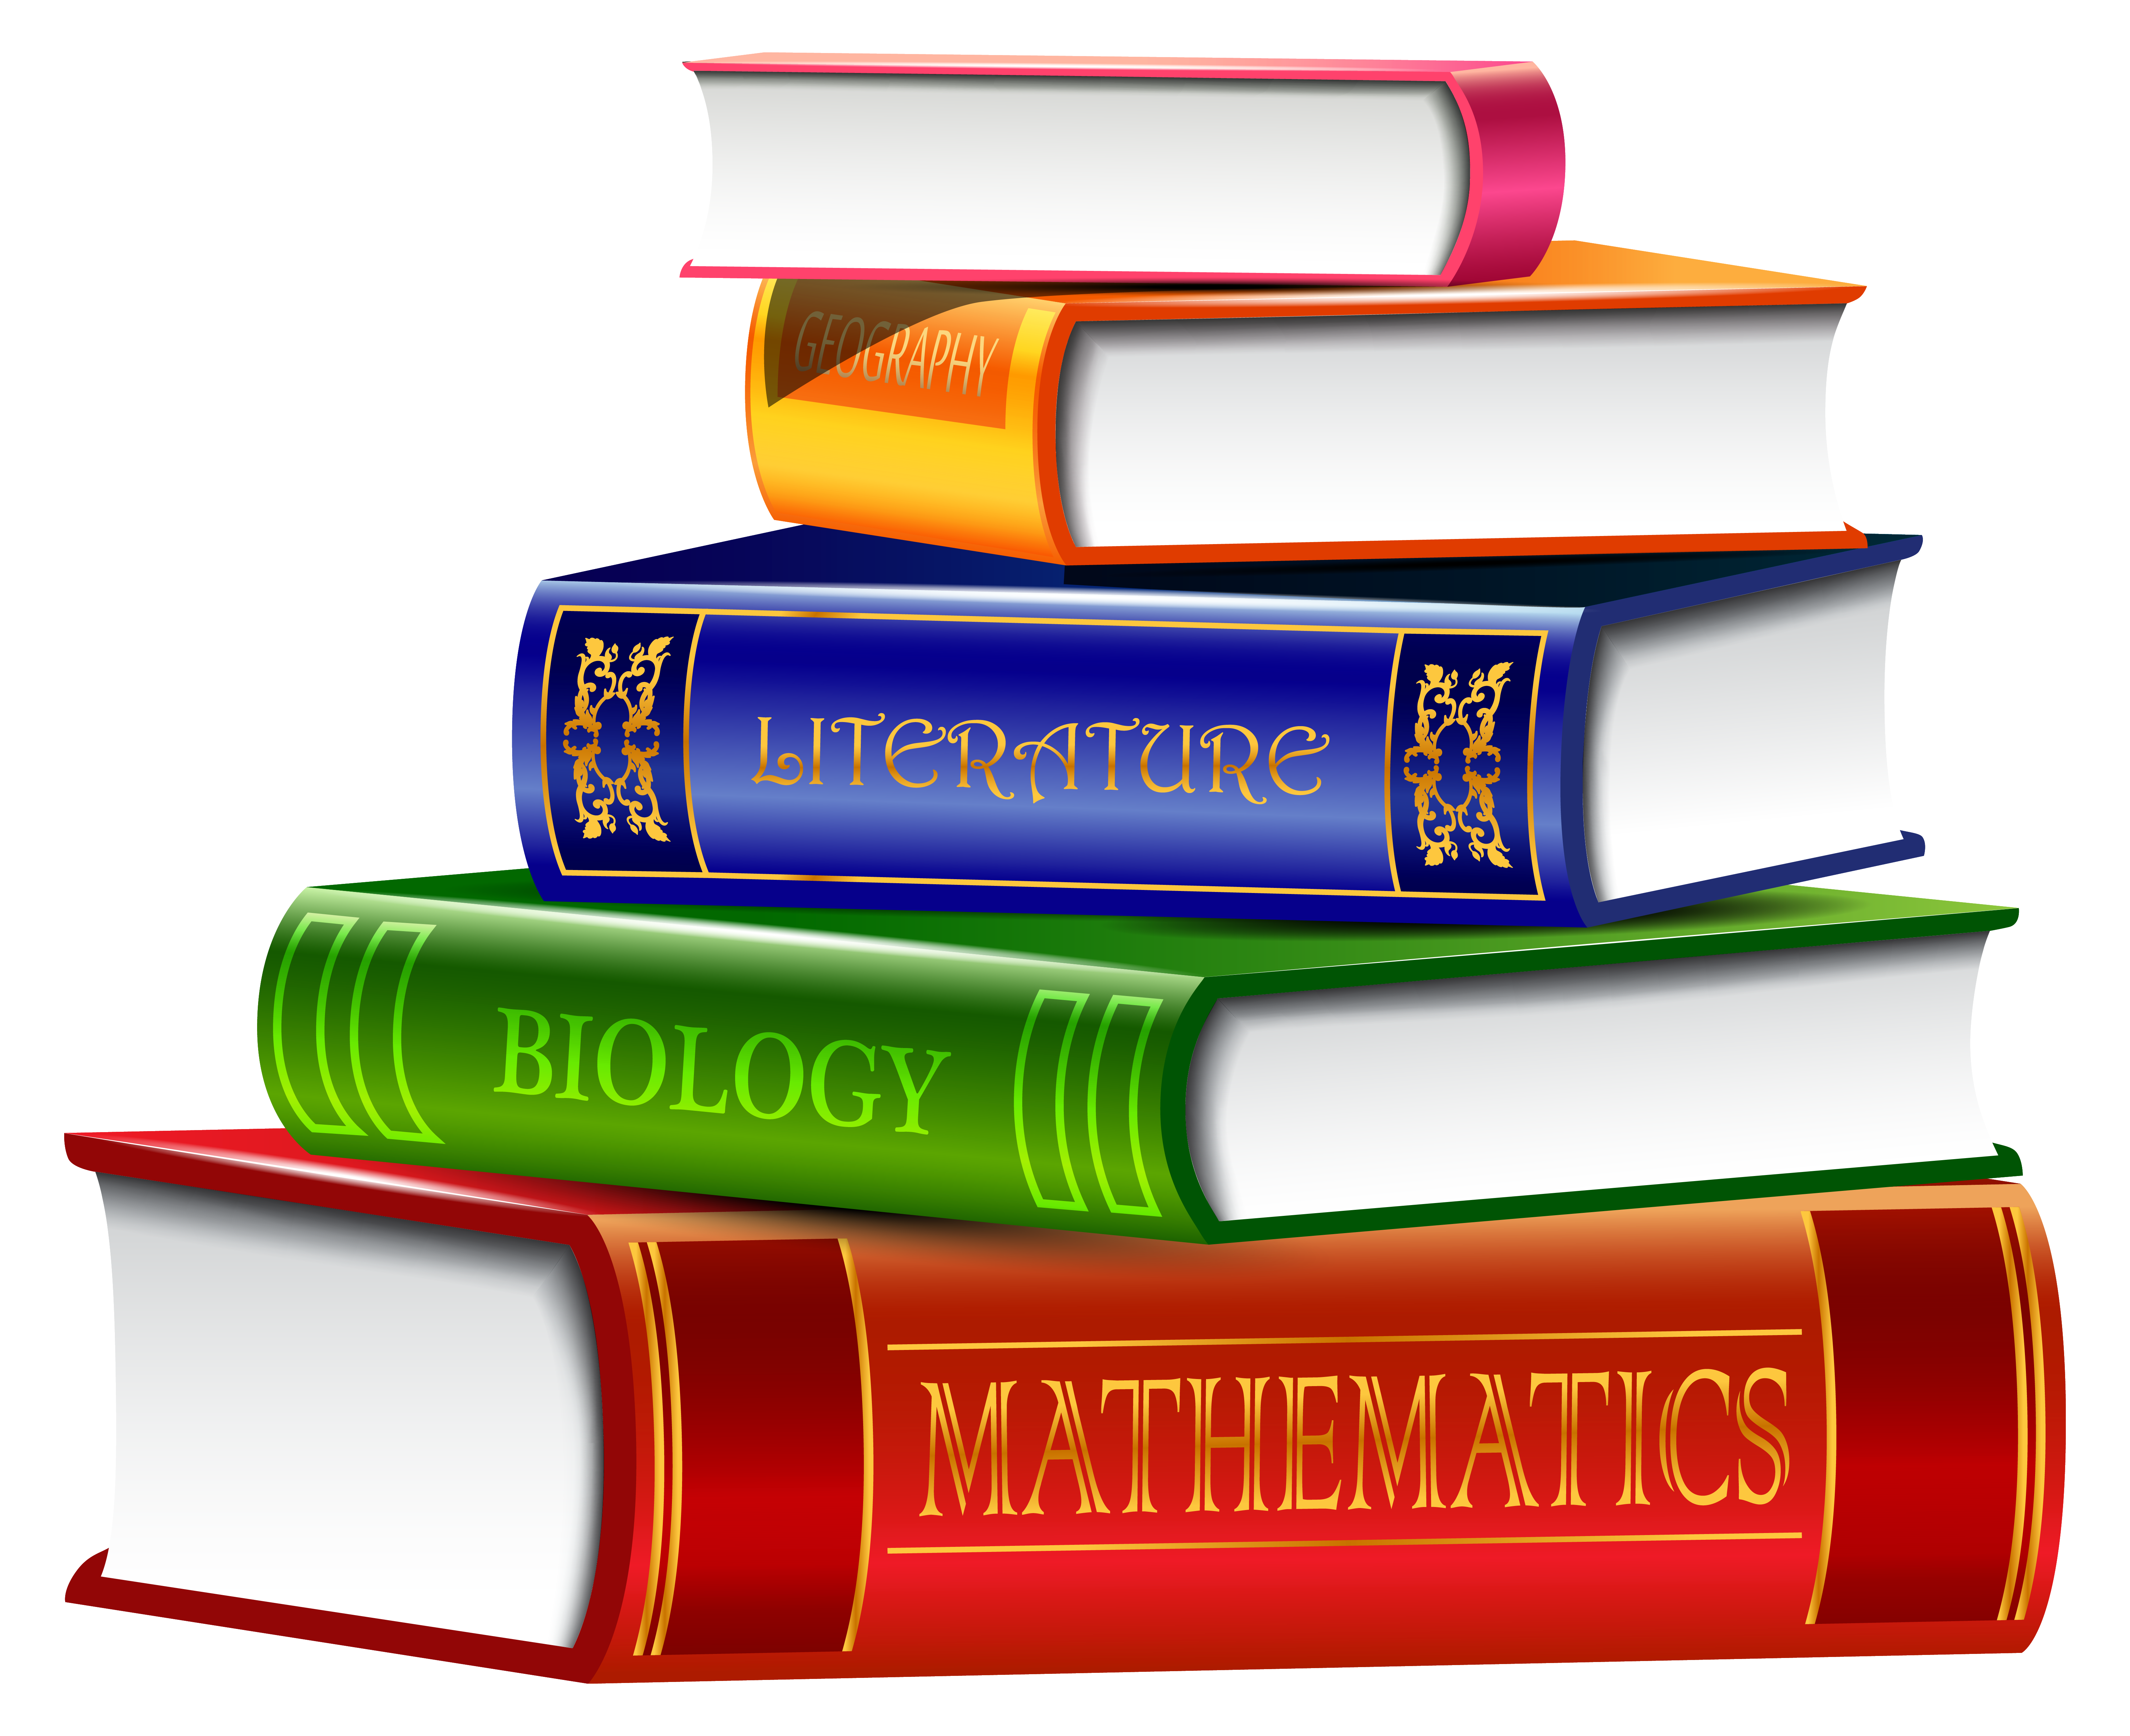 School book png. Books transparent picture gallery